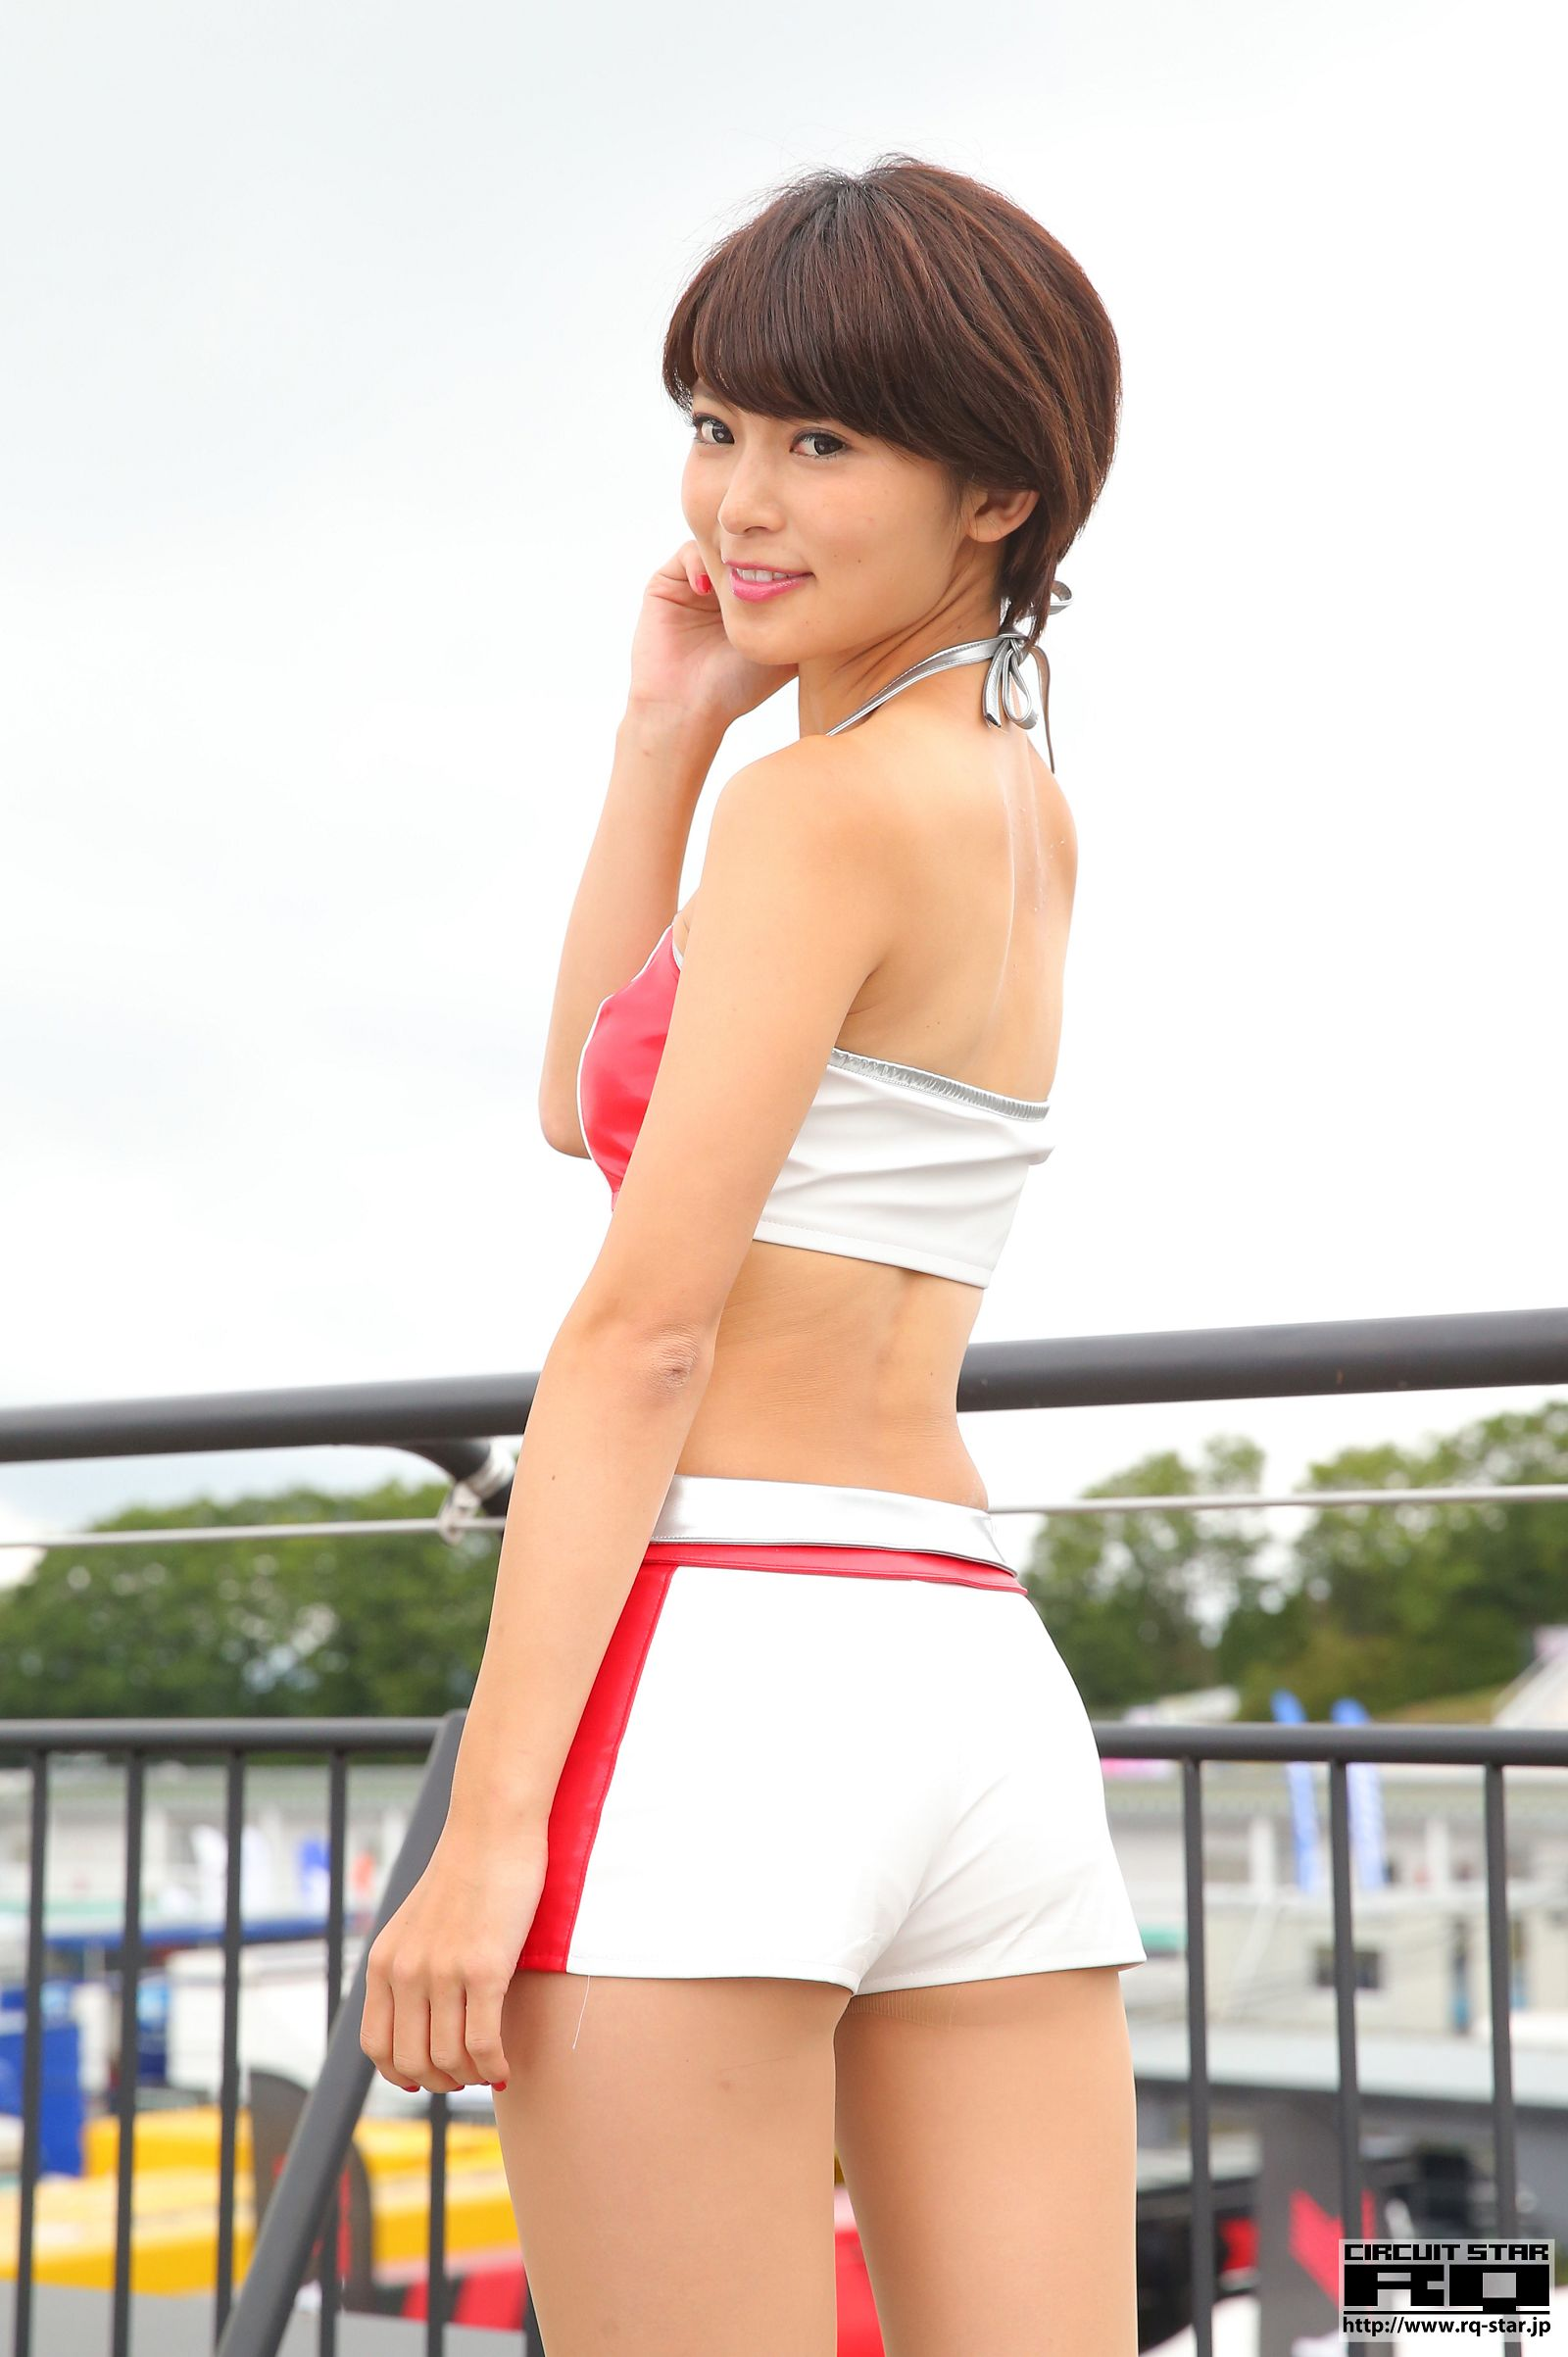 [RQ STAR美女] 2018.05.26 Yoshika Tsujii 辻井美香 Race Queen[29P] RQ STAR 第3张